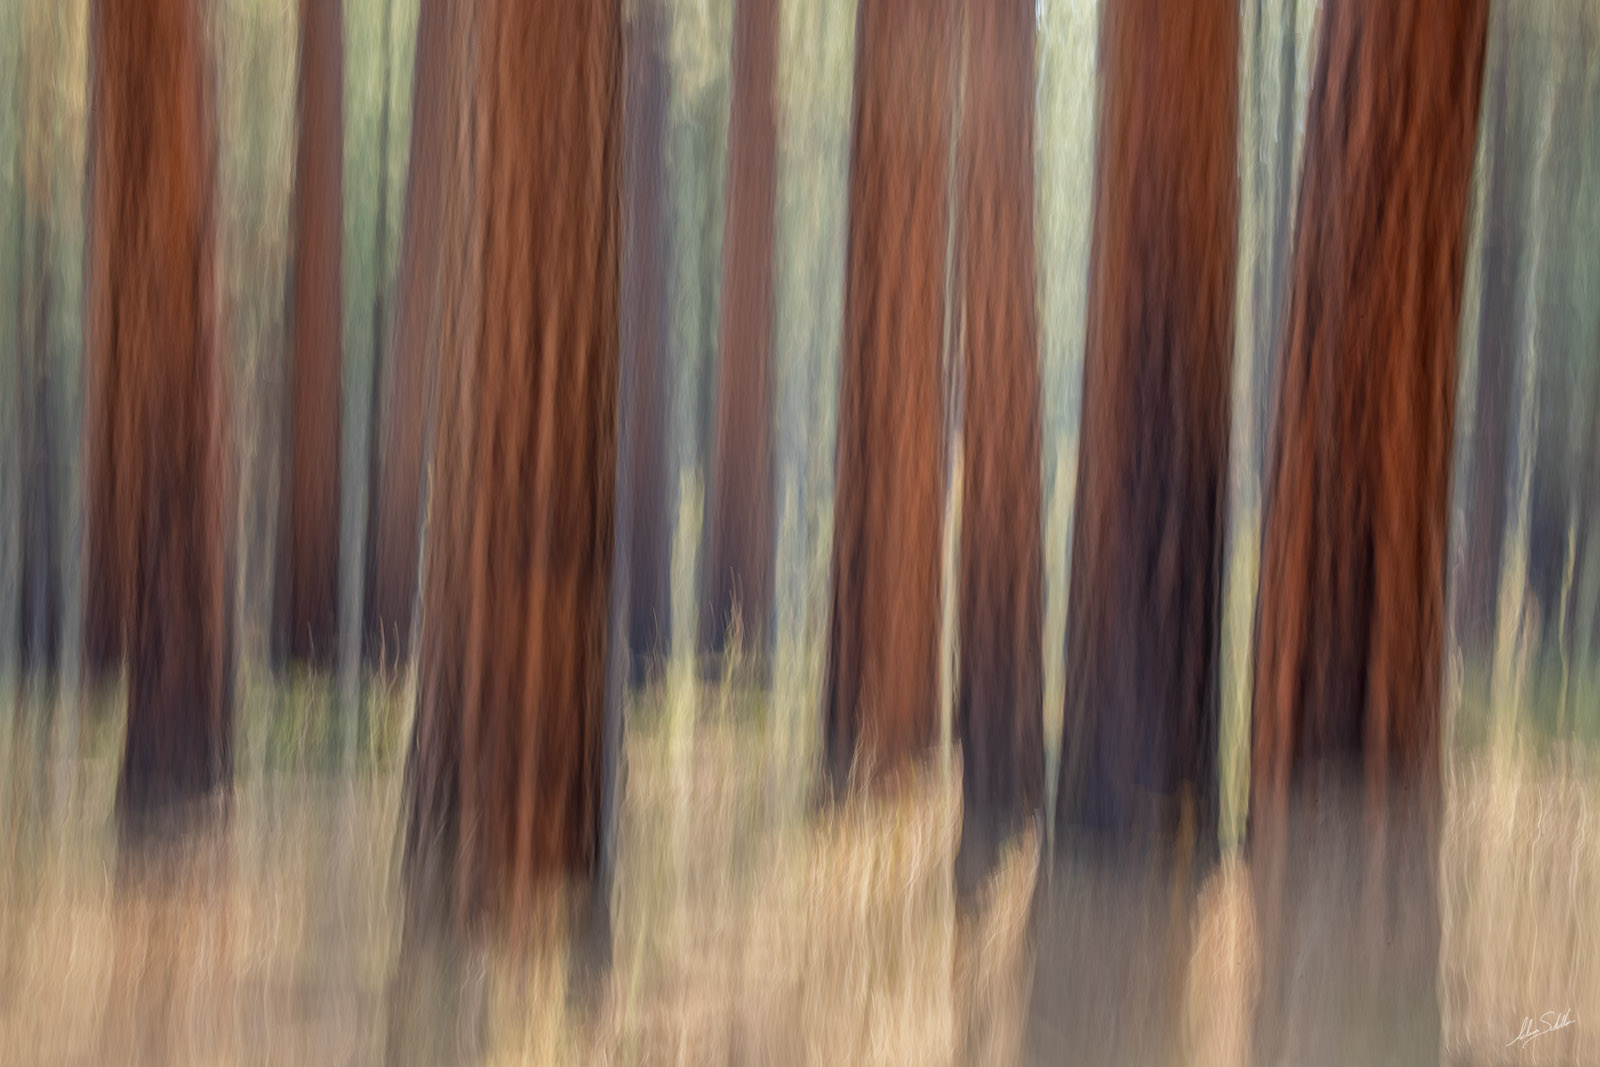 I used a long exposure to create this impressionistic interpretation of the forests of the Walhalla Glades on the North Rim of...